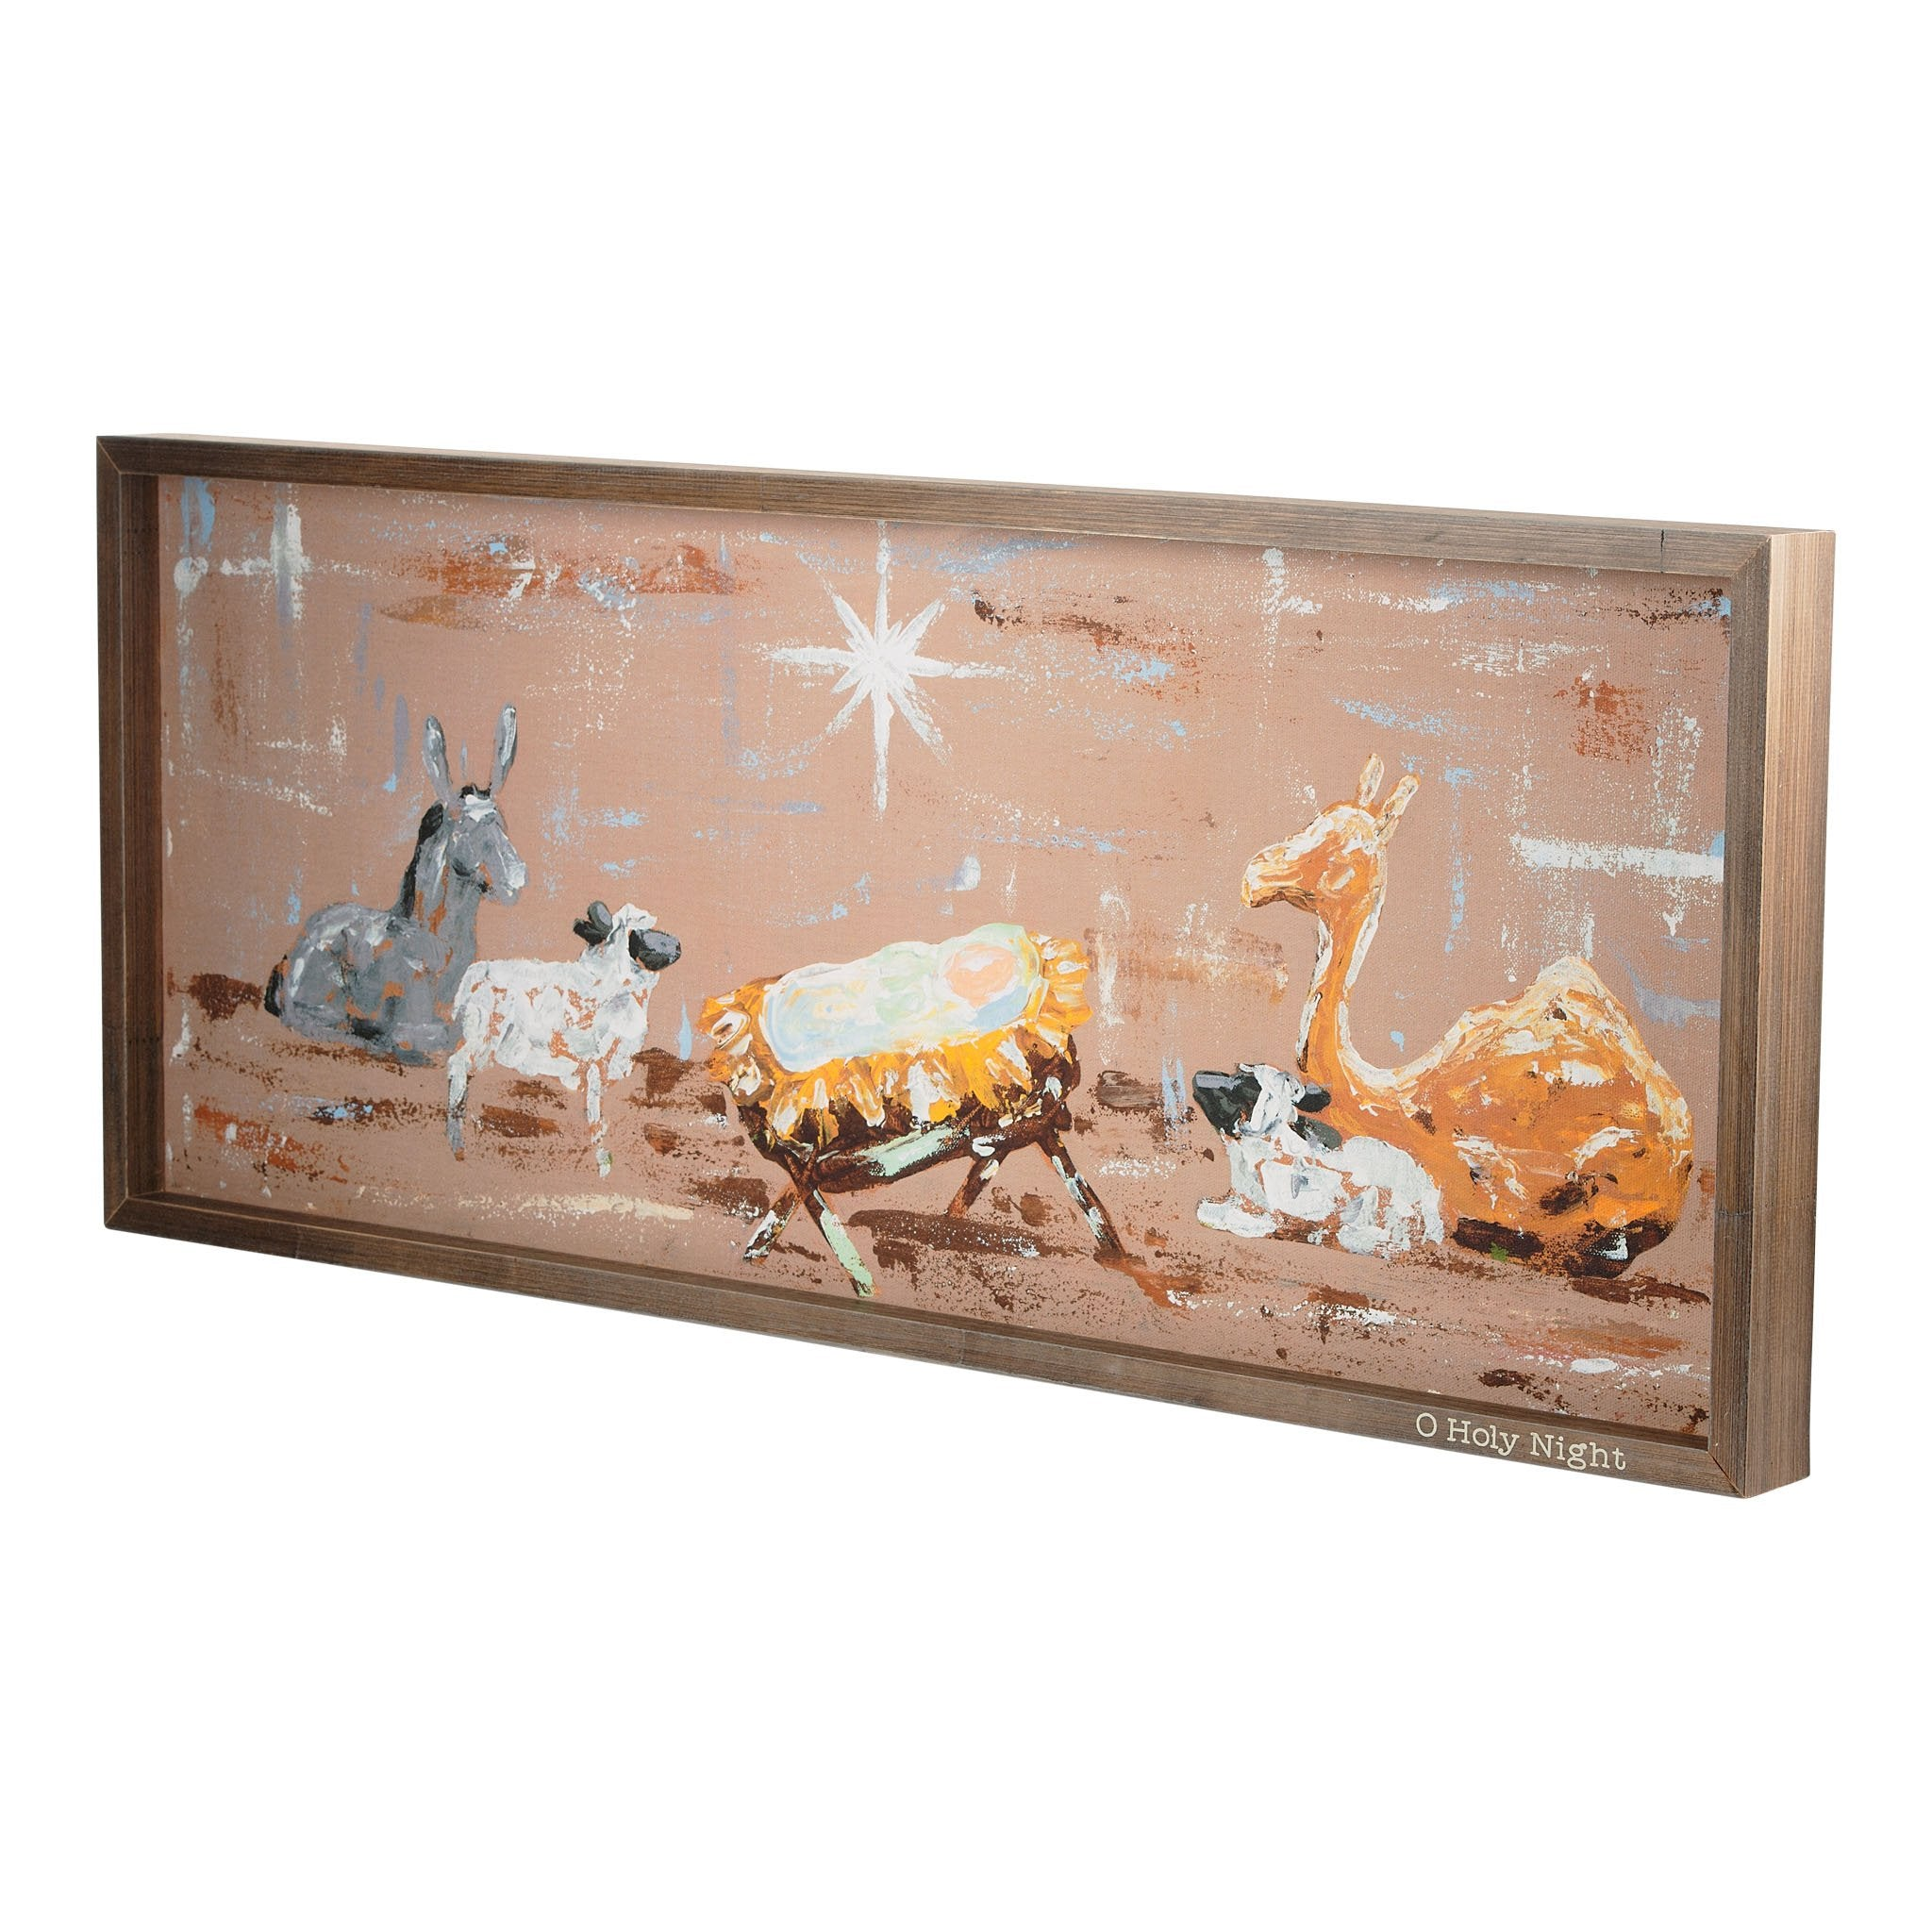 O Holy Night Framed Canvas